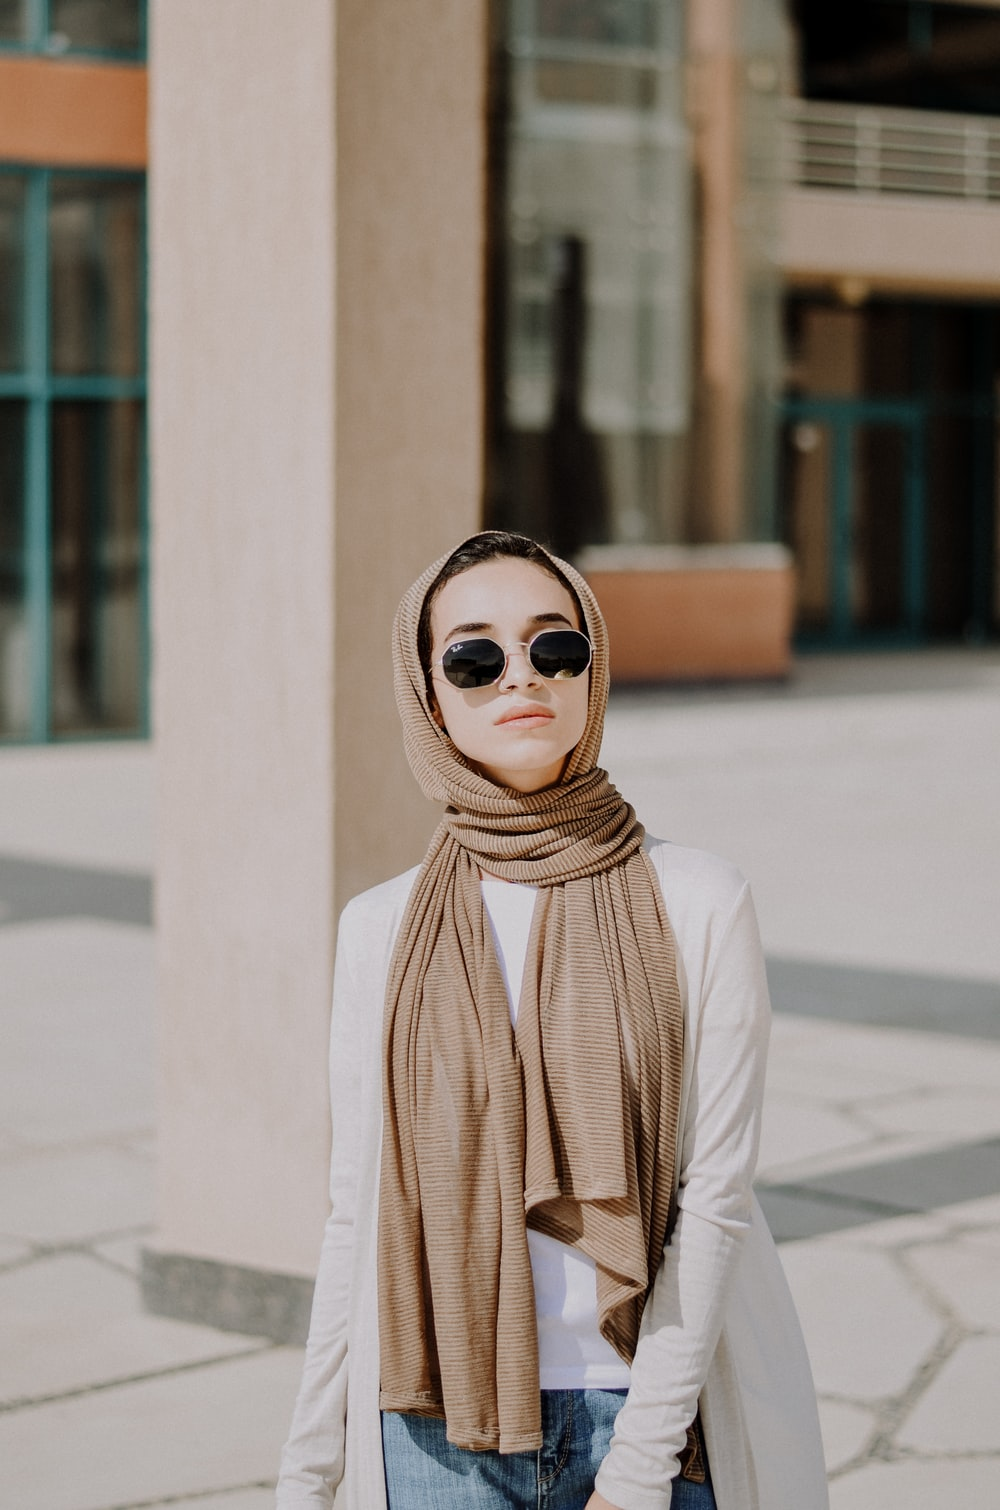 woman wearing white long-sleeved shirt and brown scarf